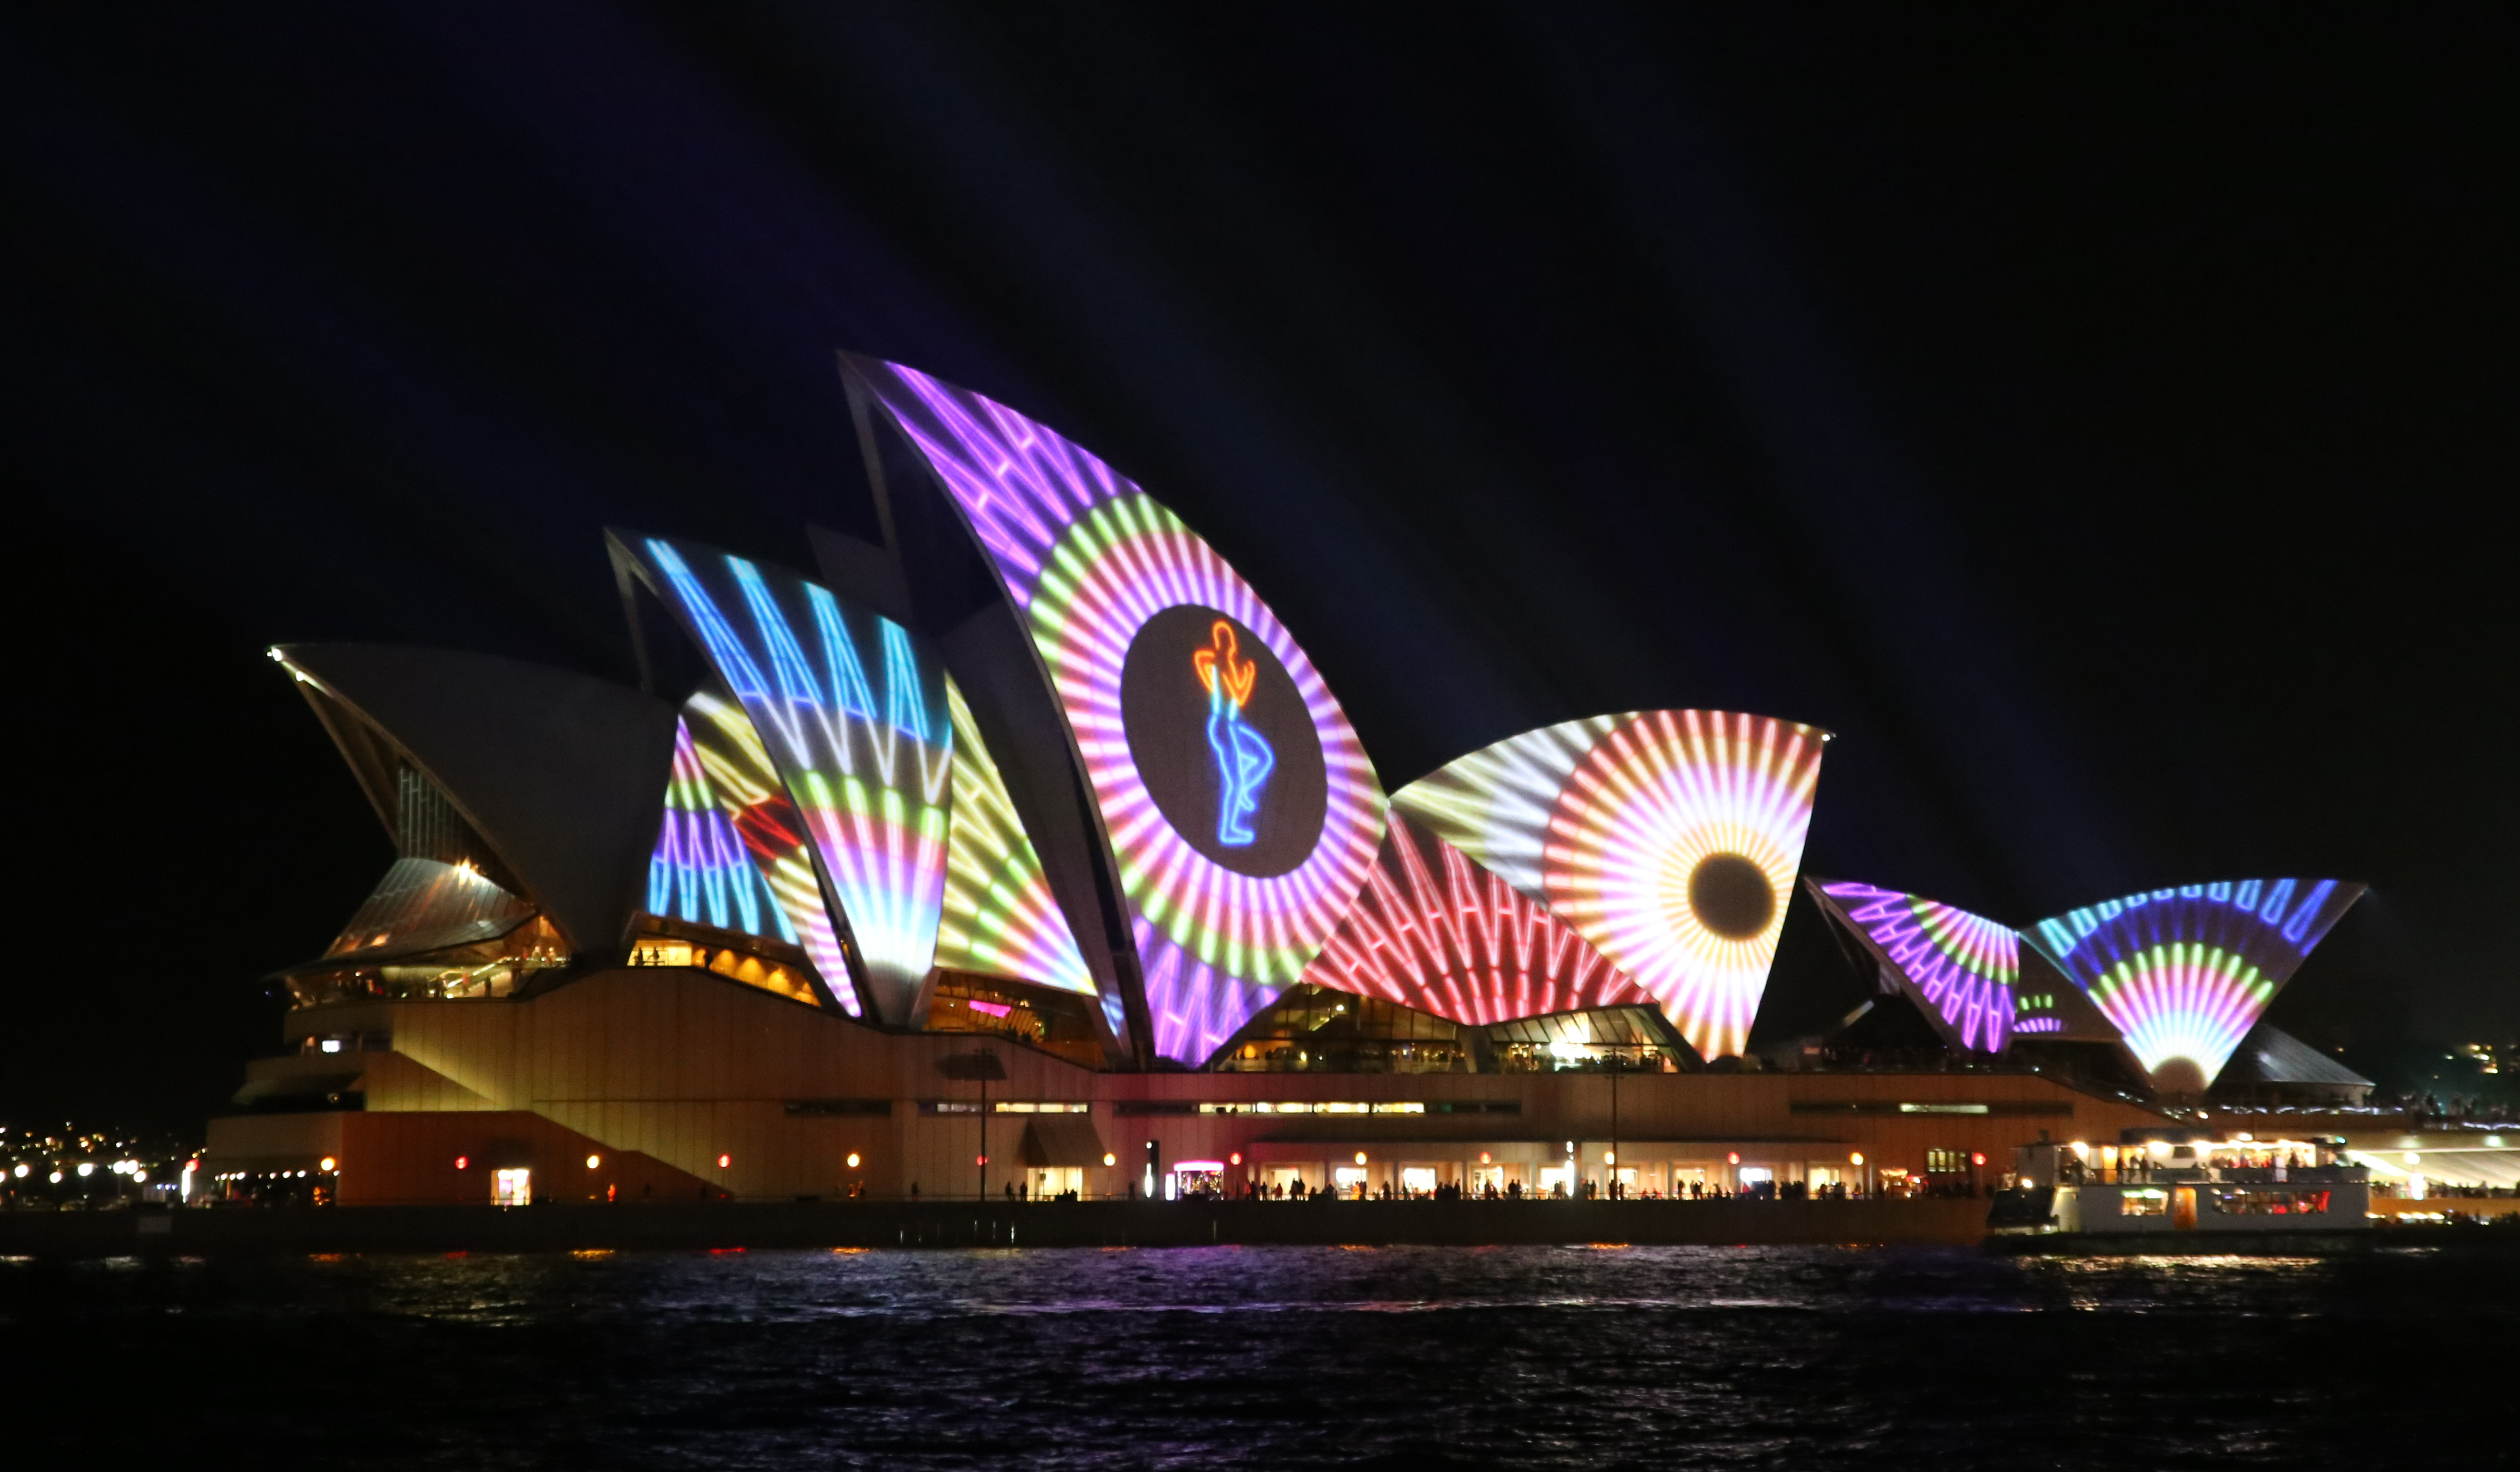 projection mapping free with File Vivid Sydney   Opera House Sails  9002321979 on File English Channel location map moreover File Visigothic Kingdom 586 711 ru additionally Top 6 Vj Software For Multiscreen Video further Vector Displacement Maps as well Watch.